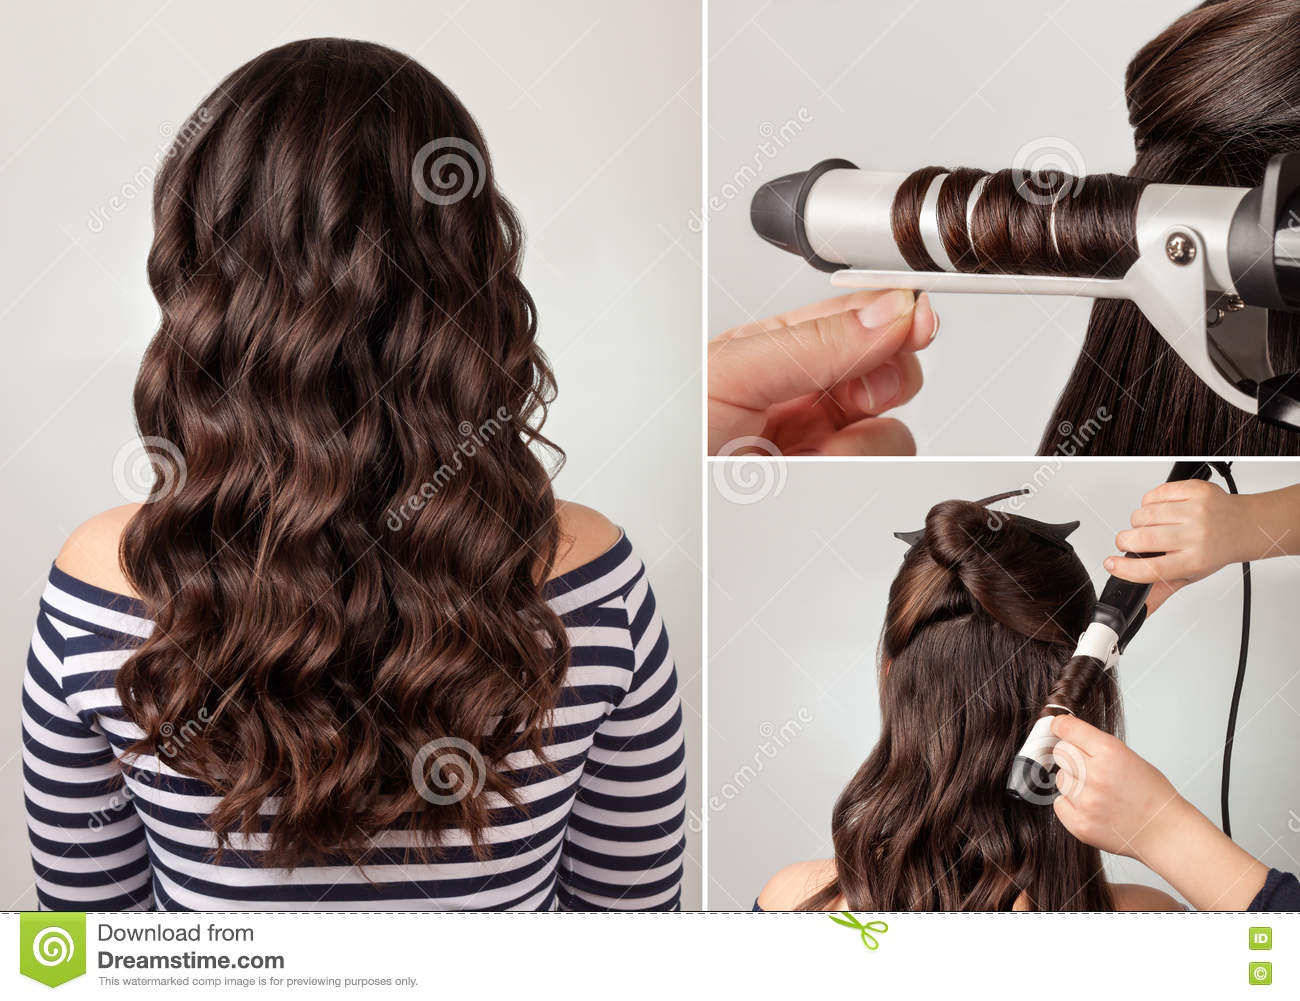 Hairstyle Curly Hair Tutorial Stock Photo - Image: 70382918